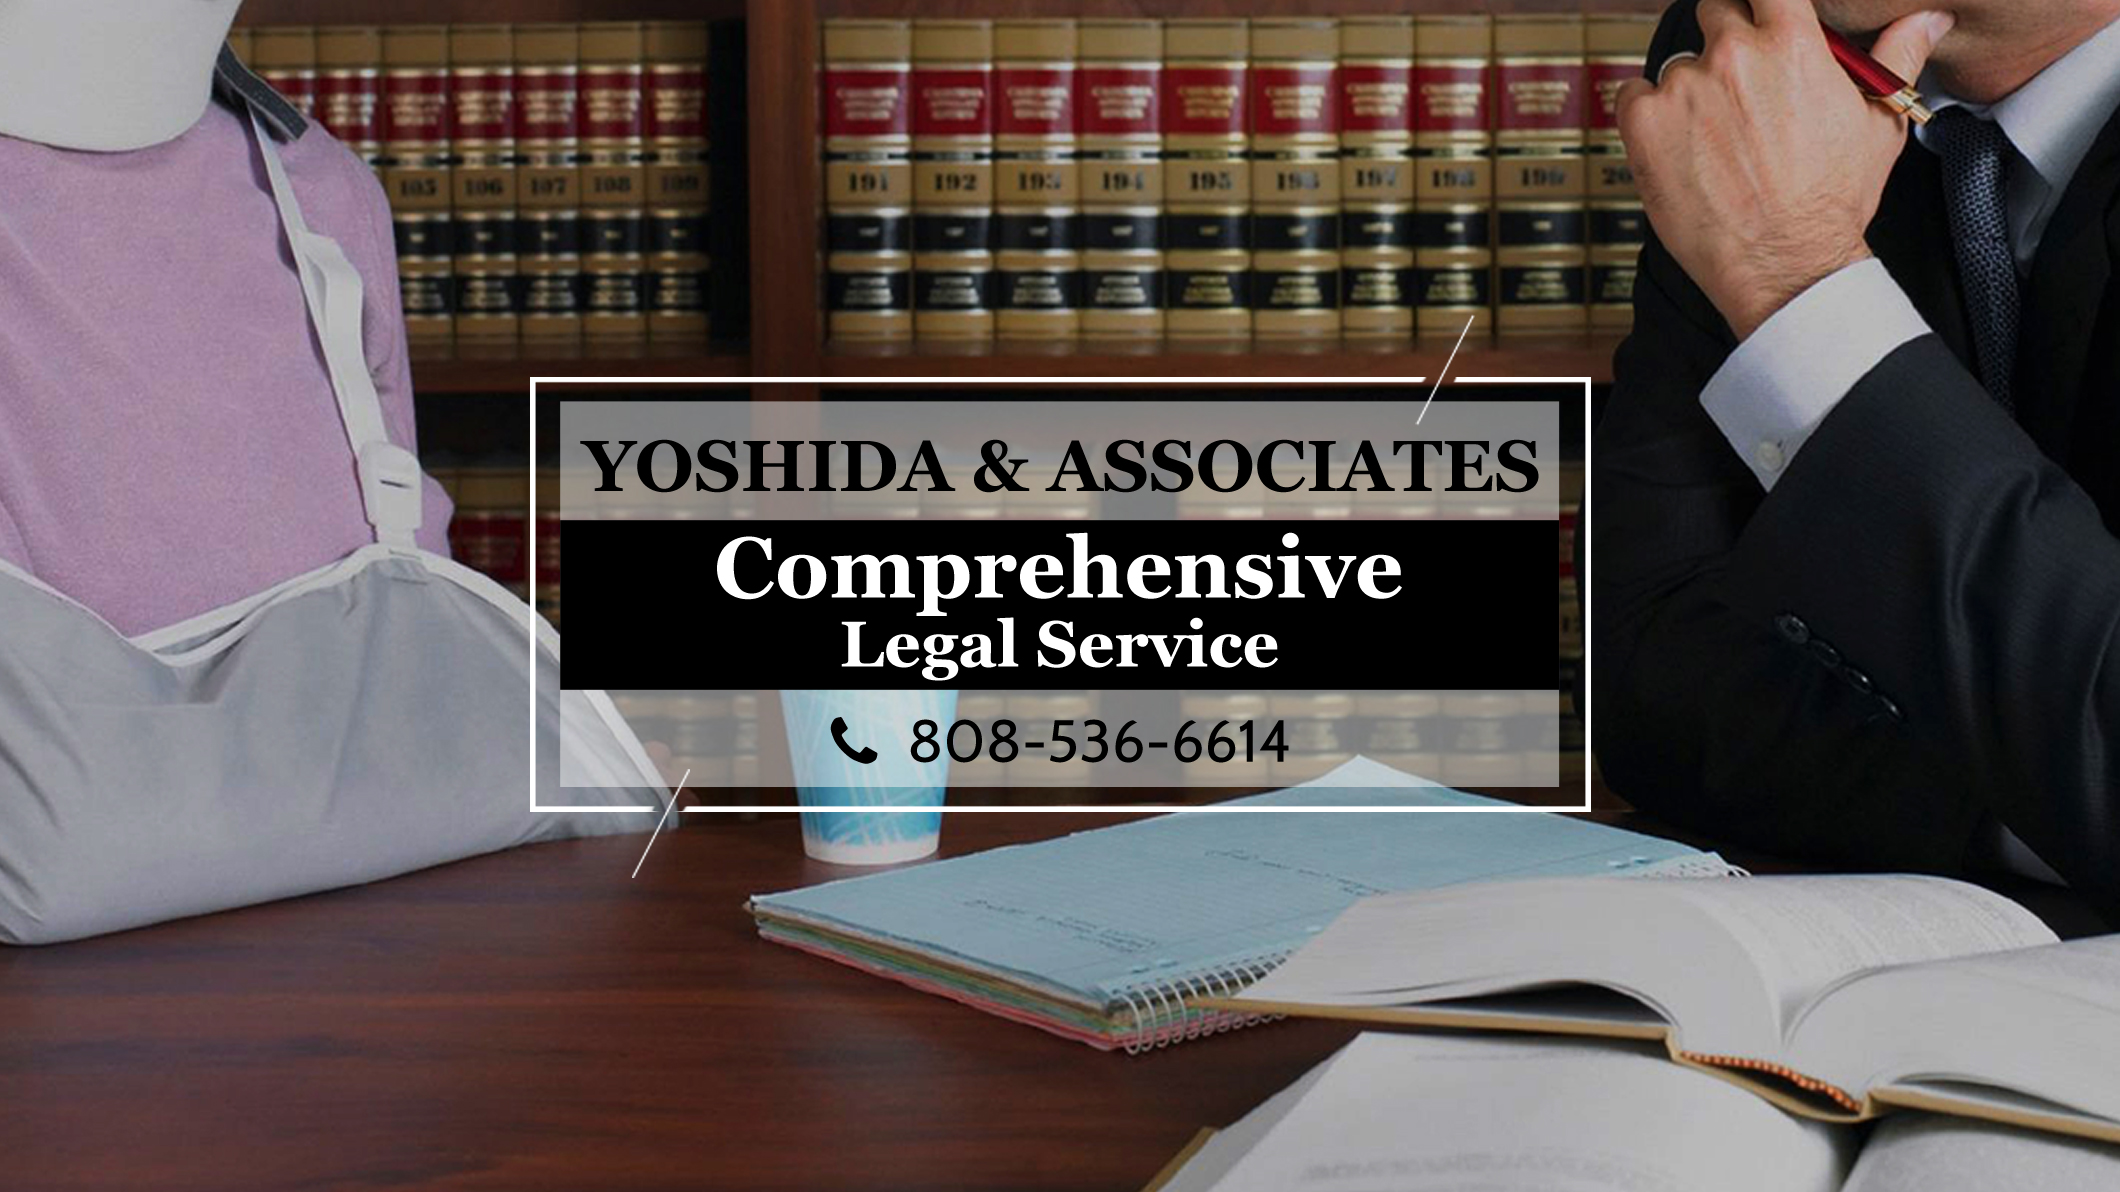 Yoshida and Associates, A Law Corp in Hawaii legal directory